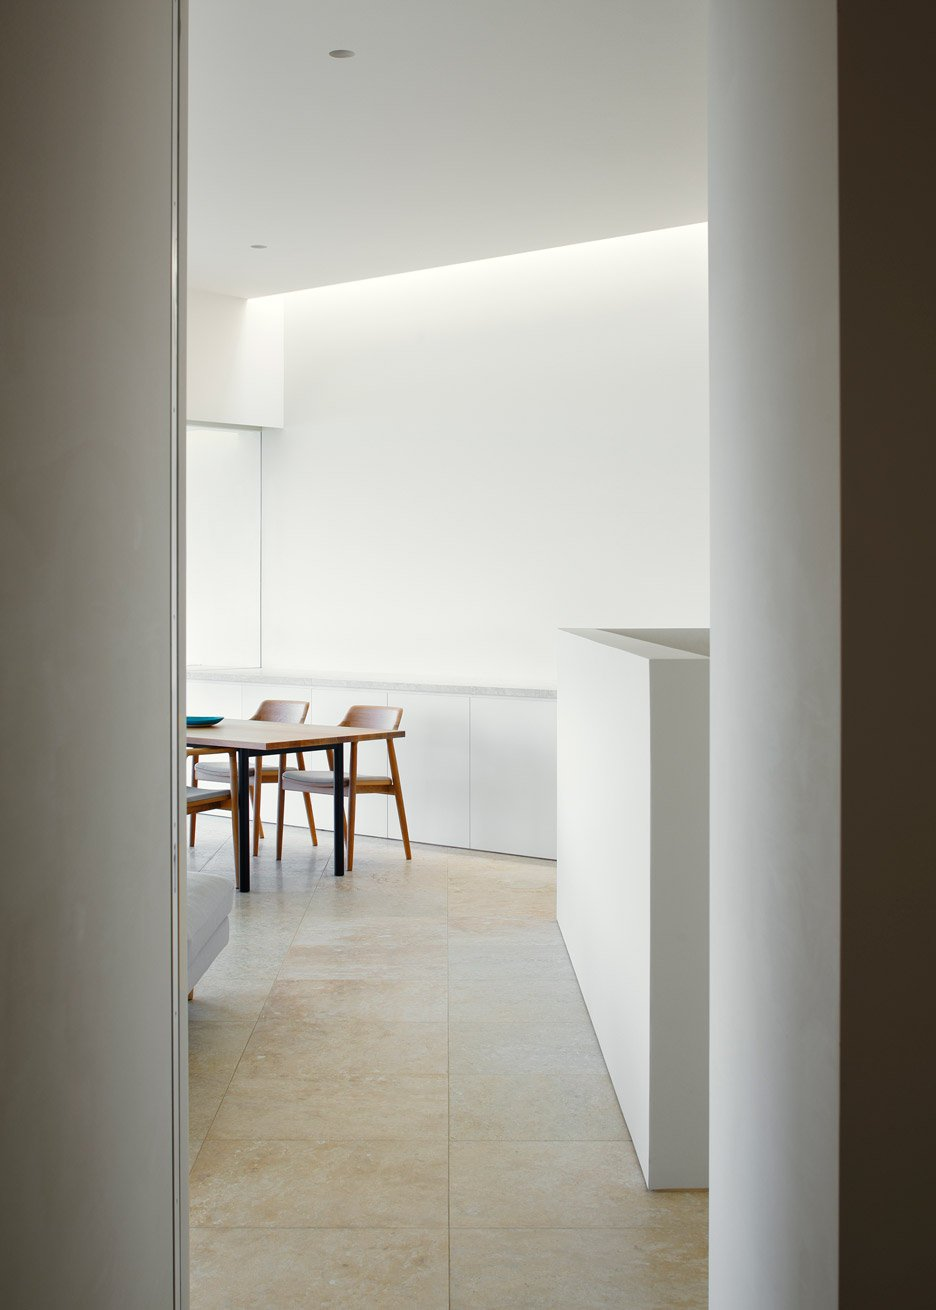 Okinawa House by John Pawson holiday home architecture Japan